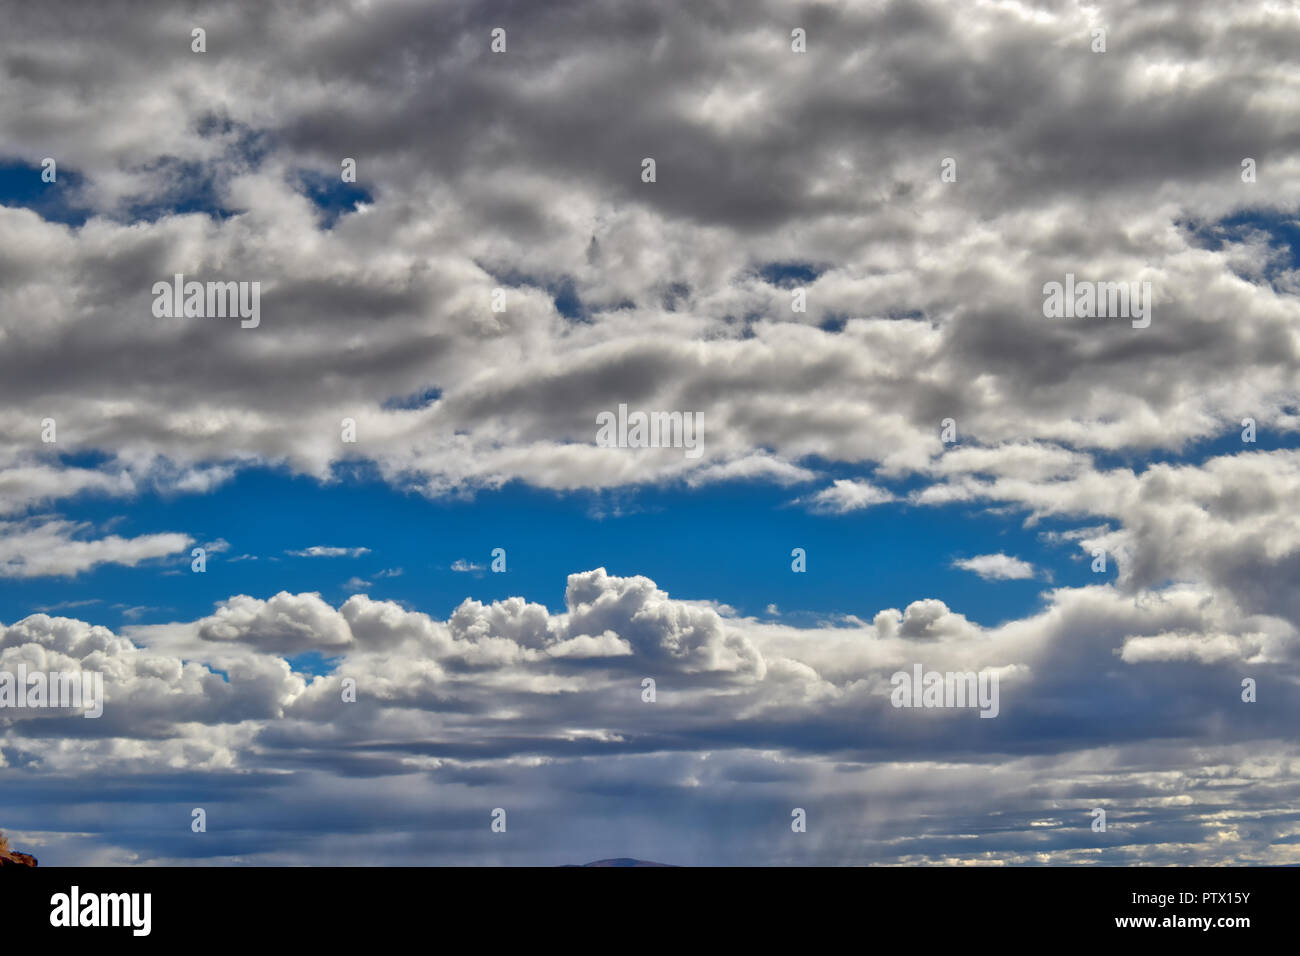 Partly cloudy skies in Central Oregon - Stock Image